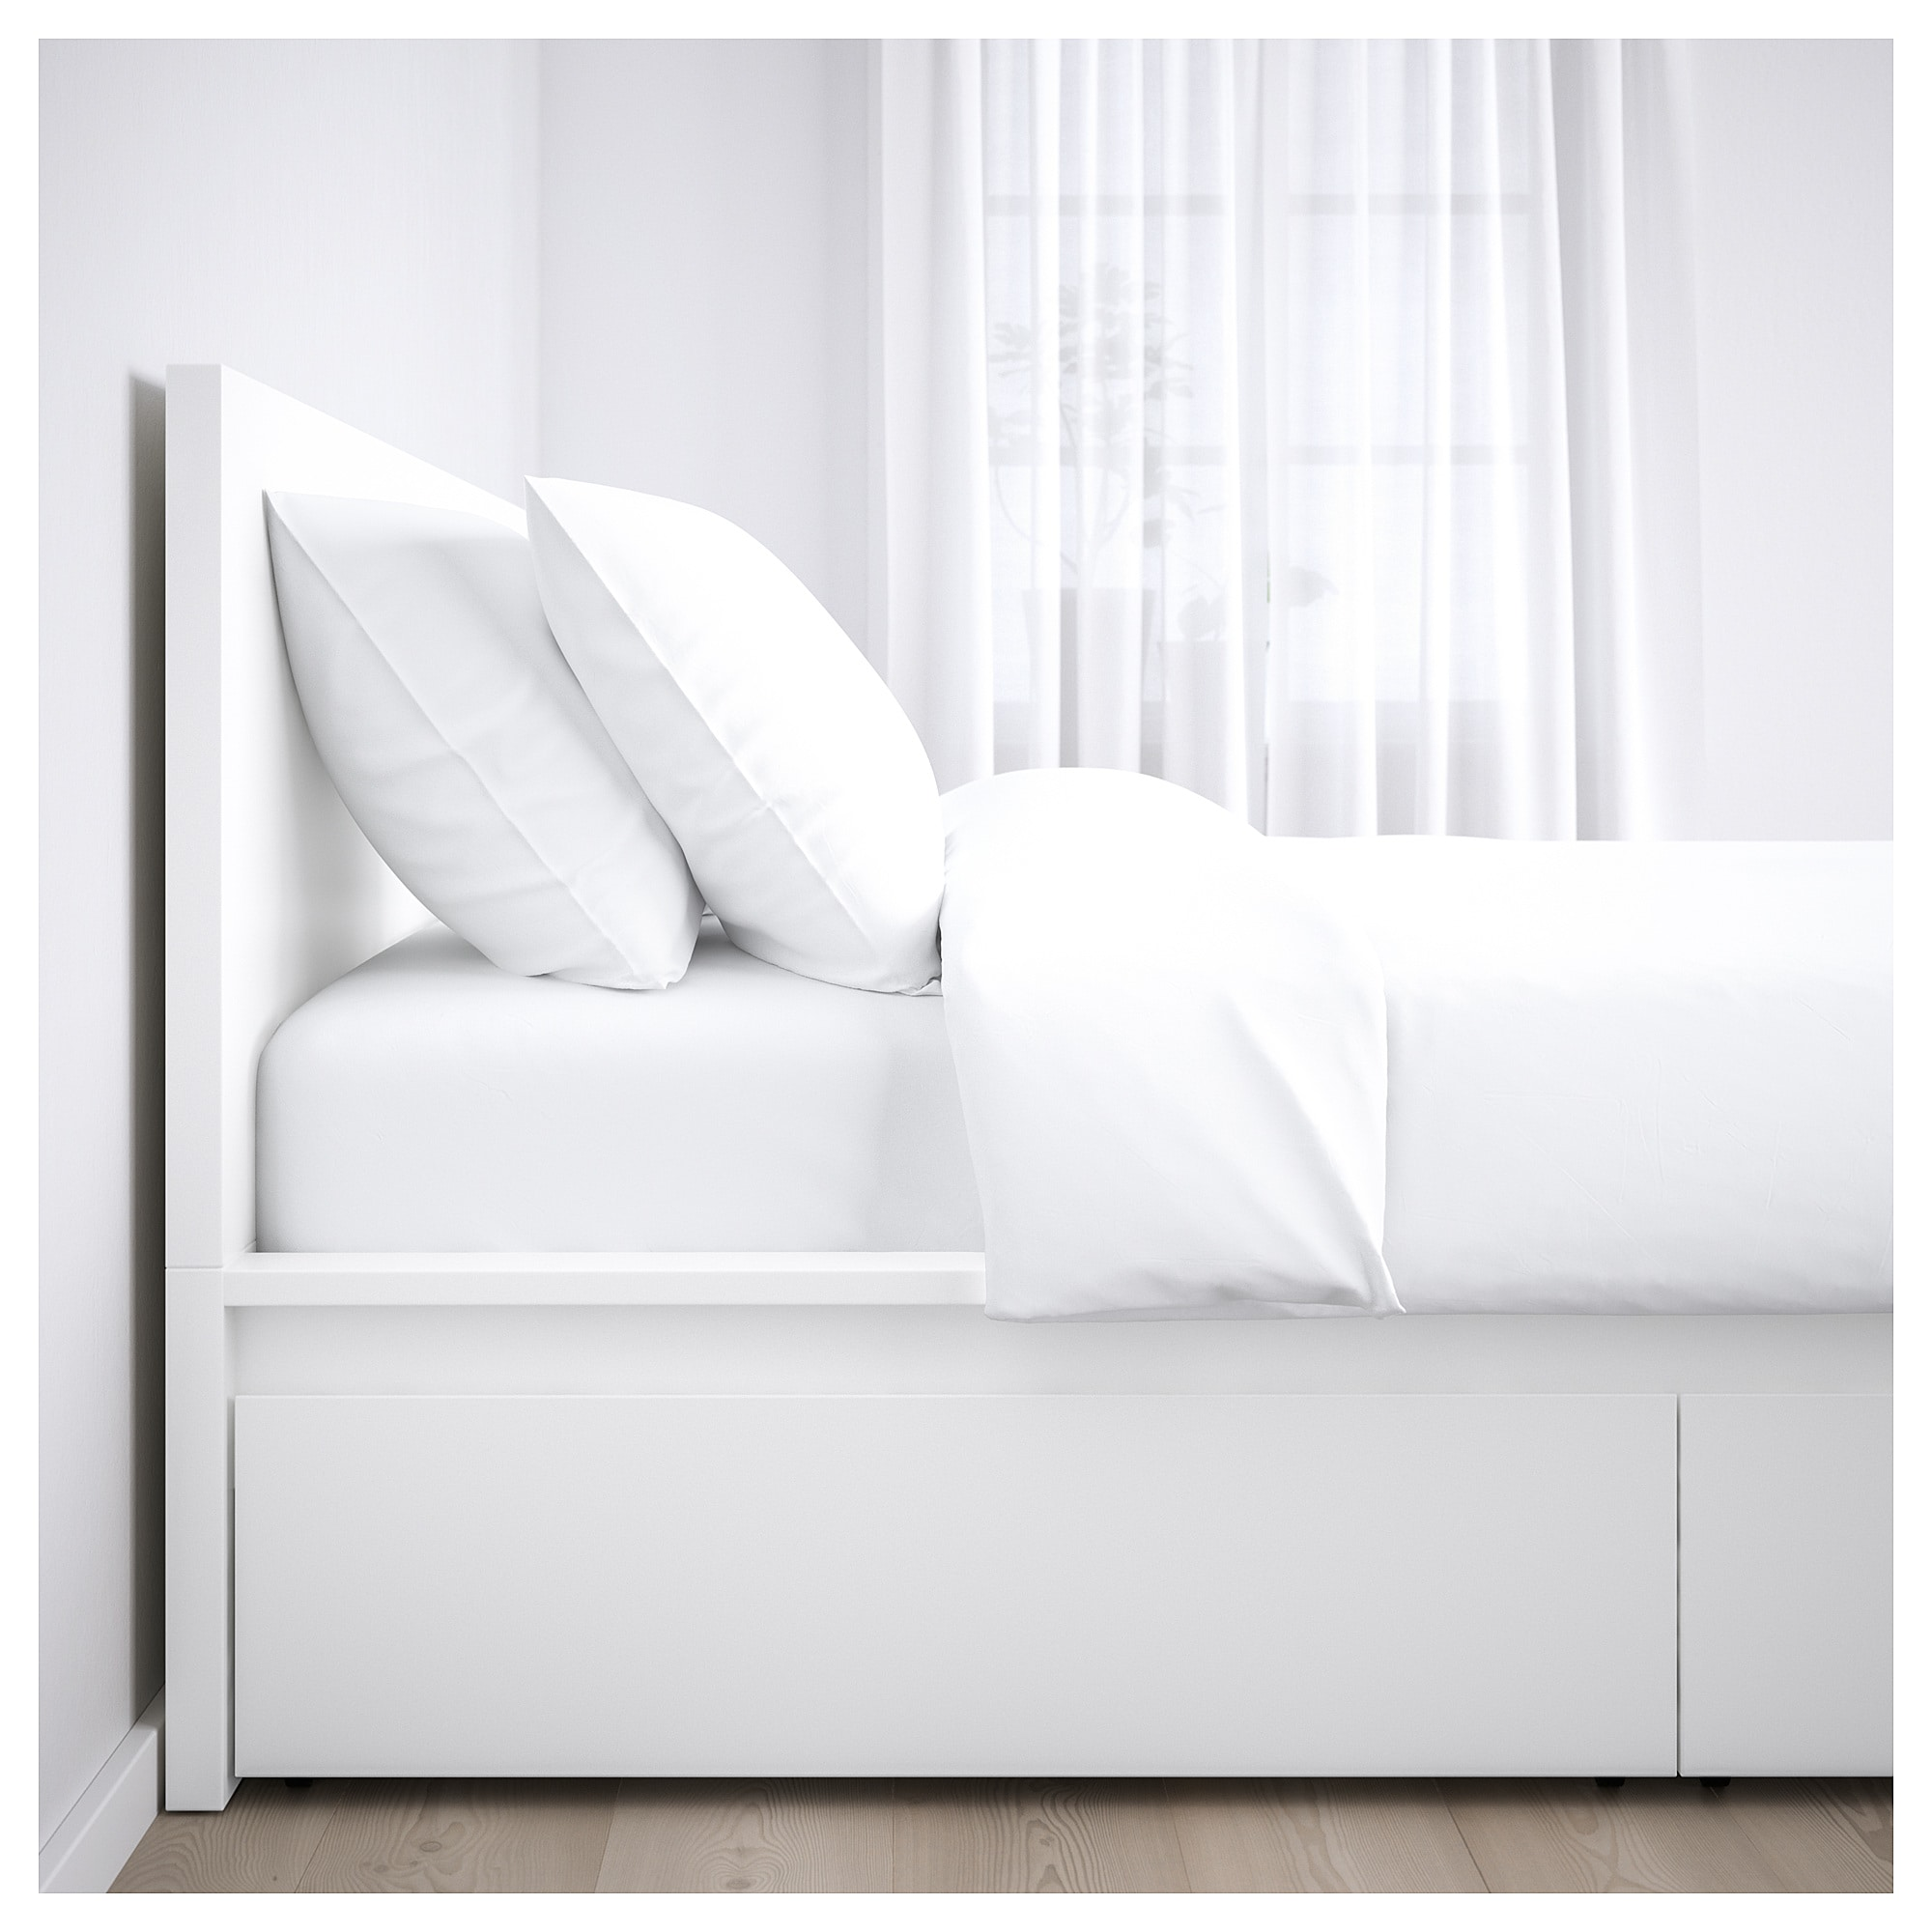 Malm High Bed Frame 2 Storage Boxes White Luroy Shop Here Ikea High Bed Frame White Bed Frame Bed Frame With Storage